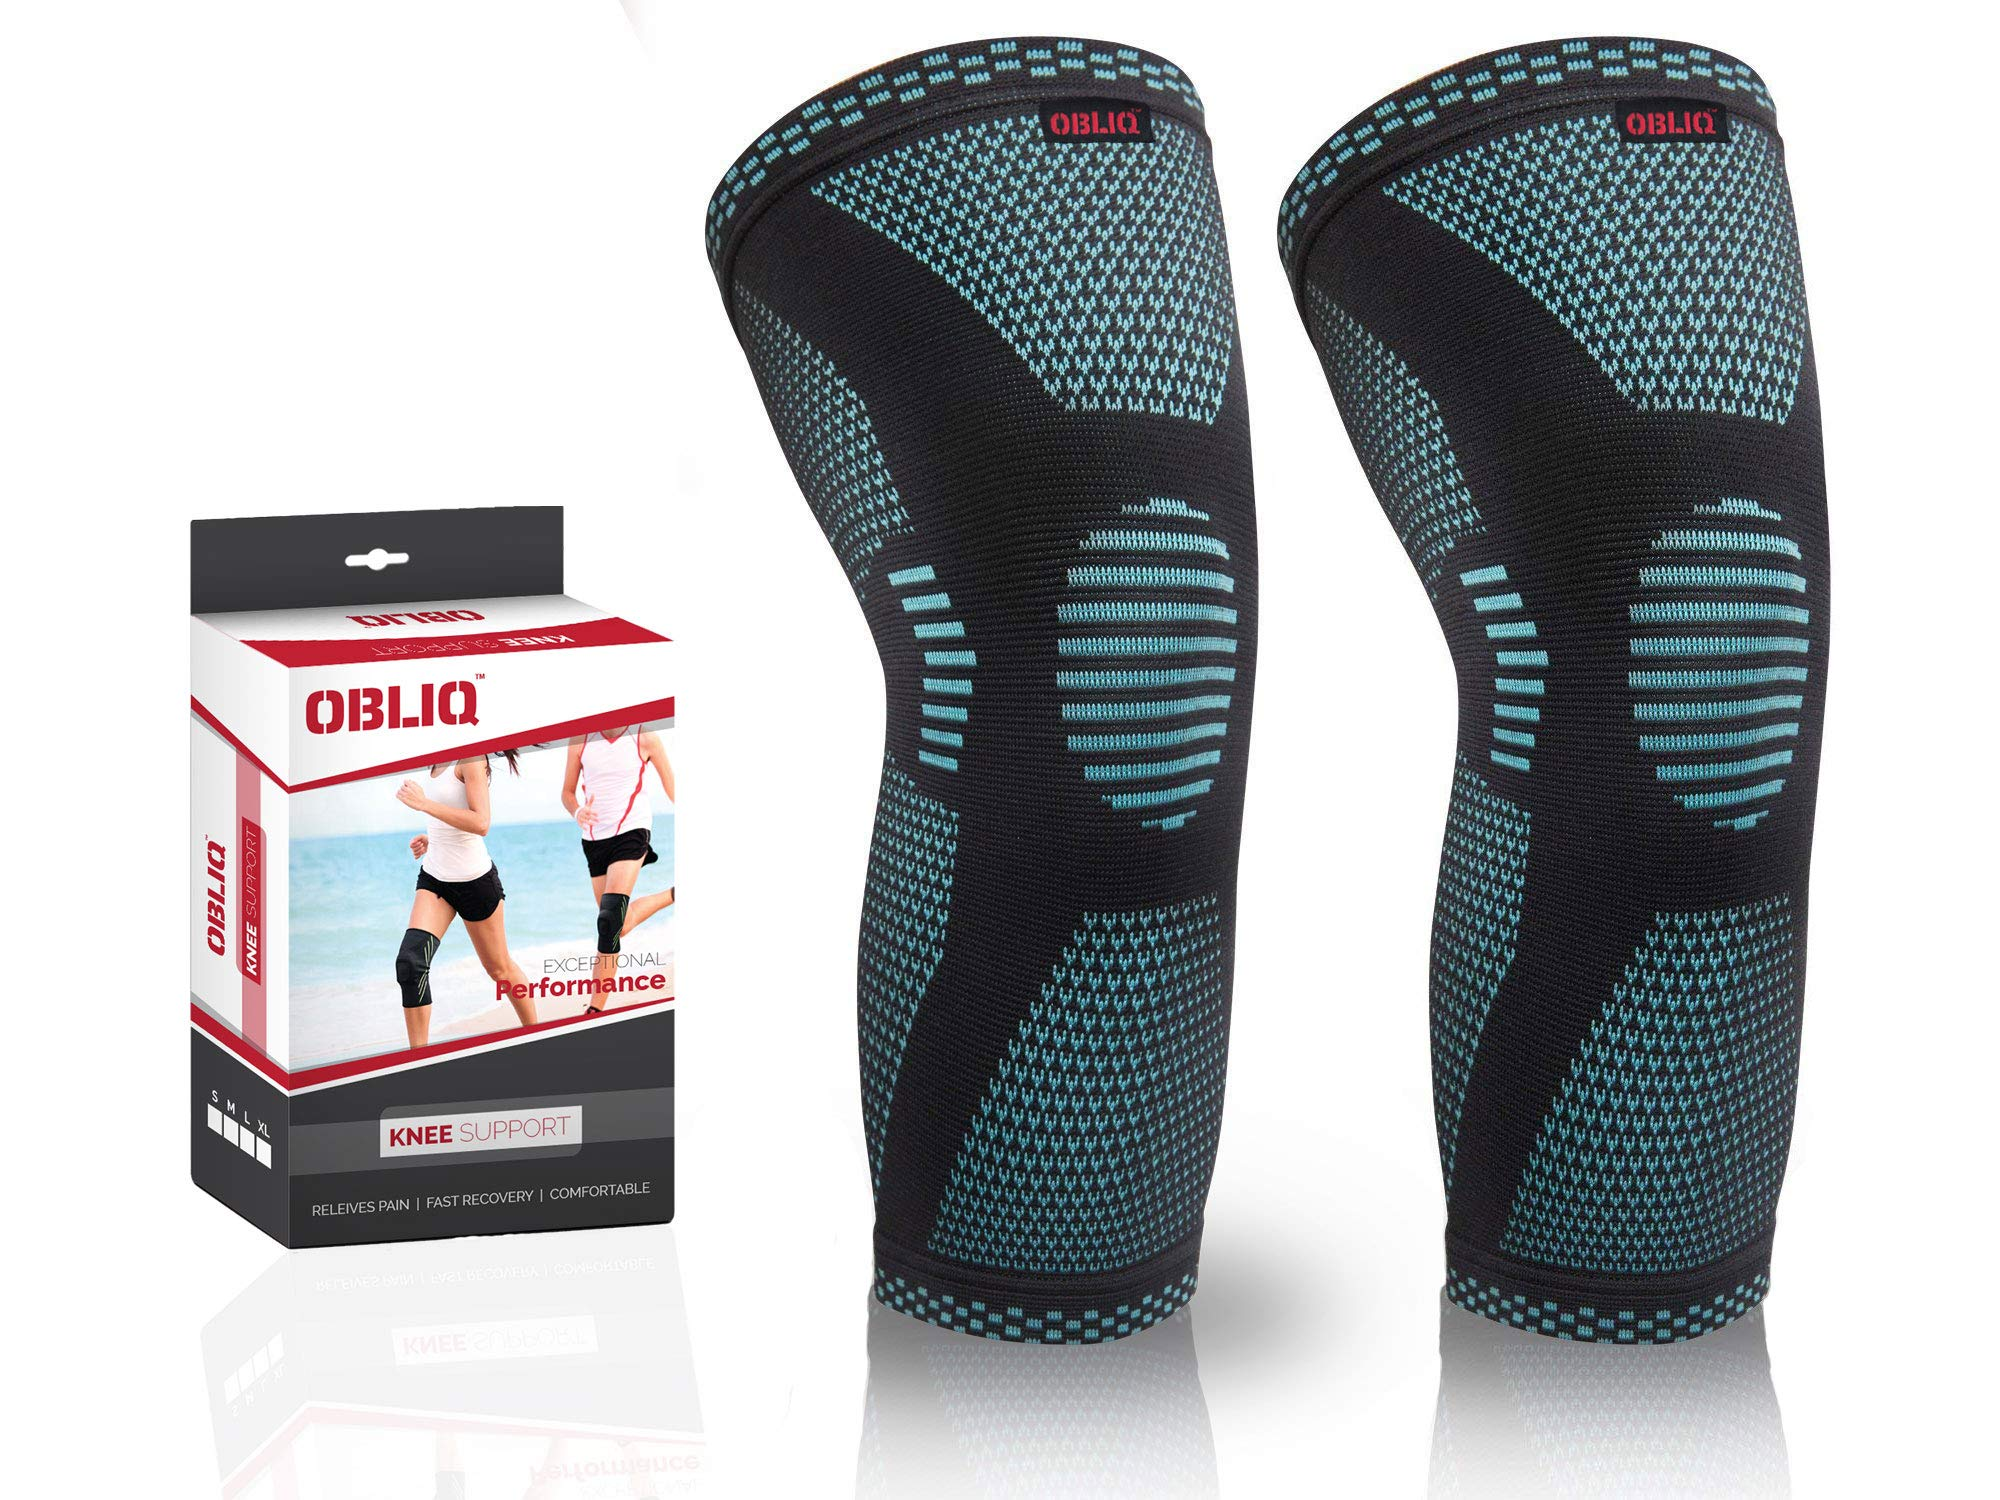 OBLIQ Sport Knee Cap Support Compression Sleeve for Running, Tennis, Football, Pain Relief (1 Pair) (Blue, Large(16.5-18 Inches)) product image